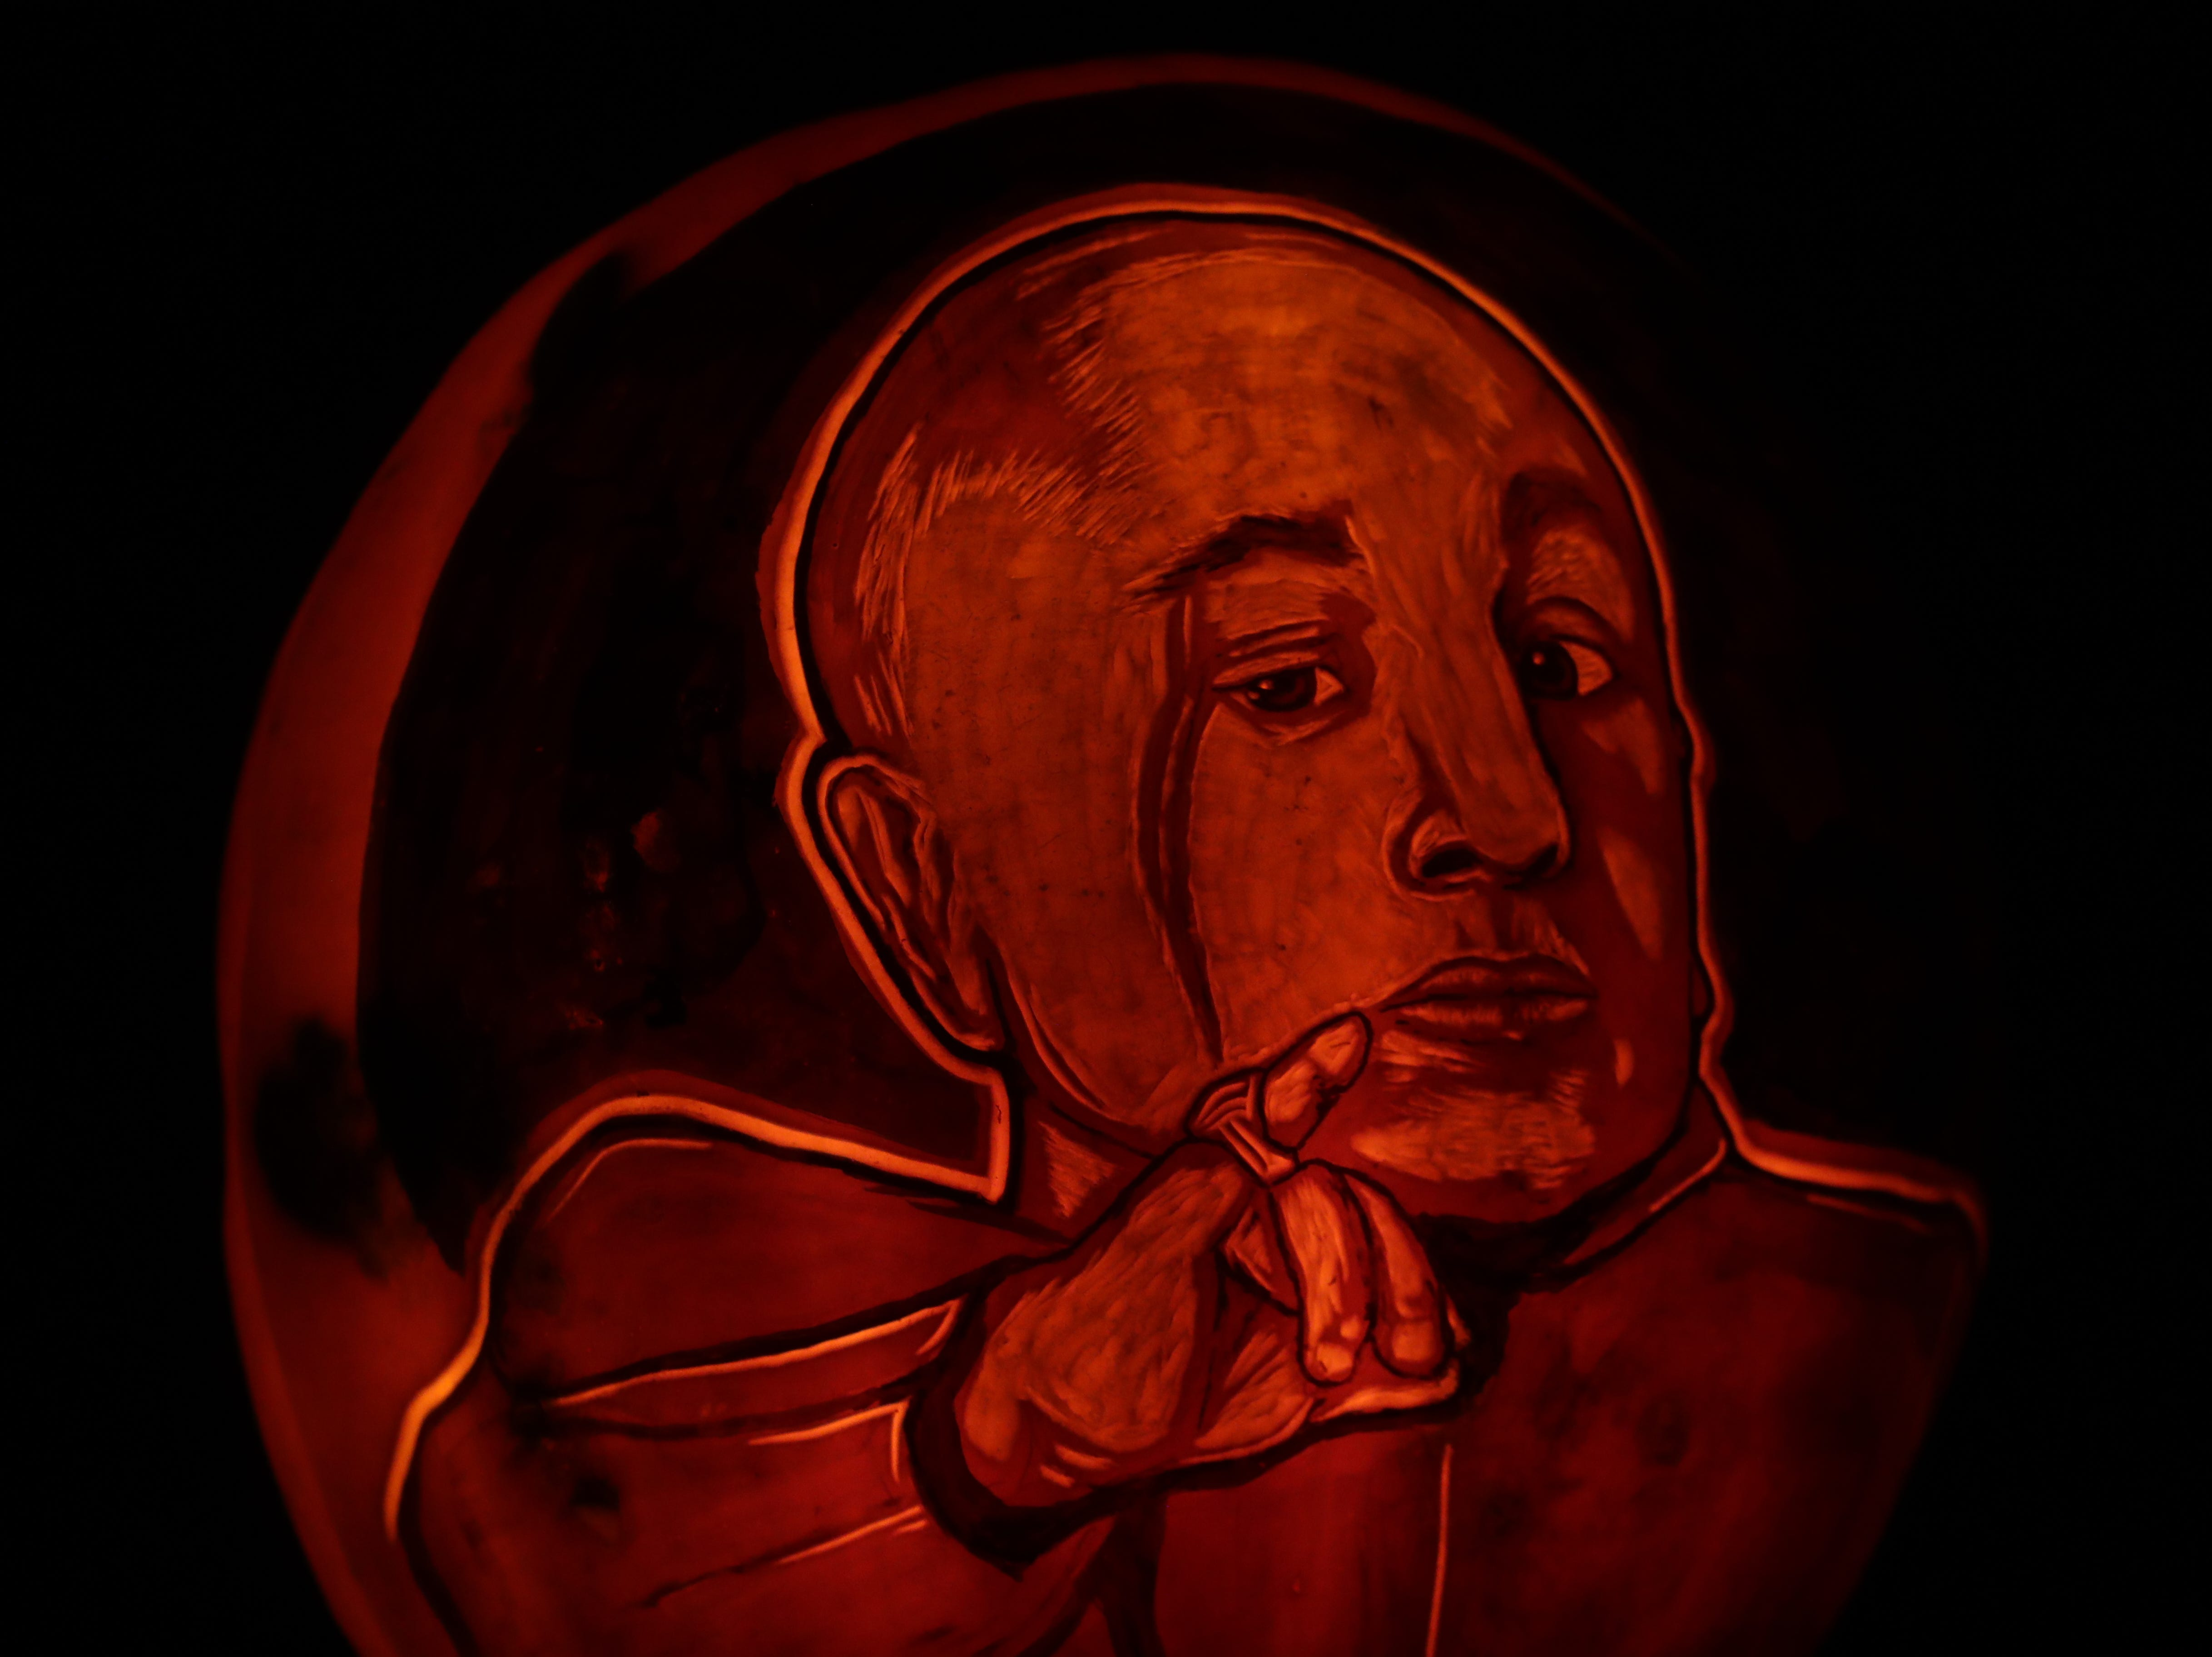 Verne Troyer appears on a pumpkin at this year's Jack O' Lantern Spectacular. Oct. 9, 2018